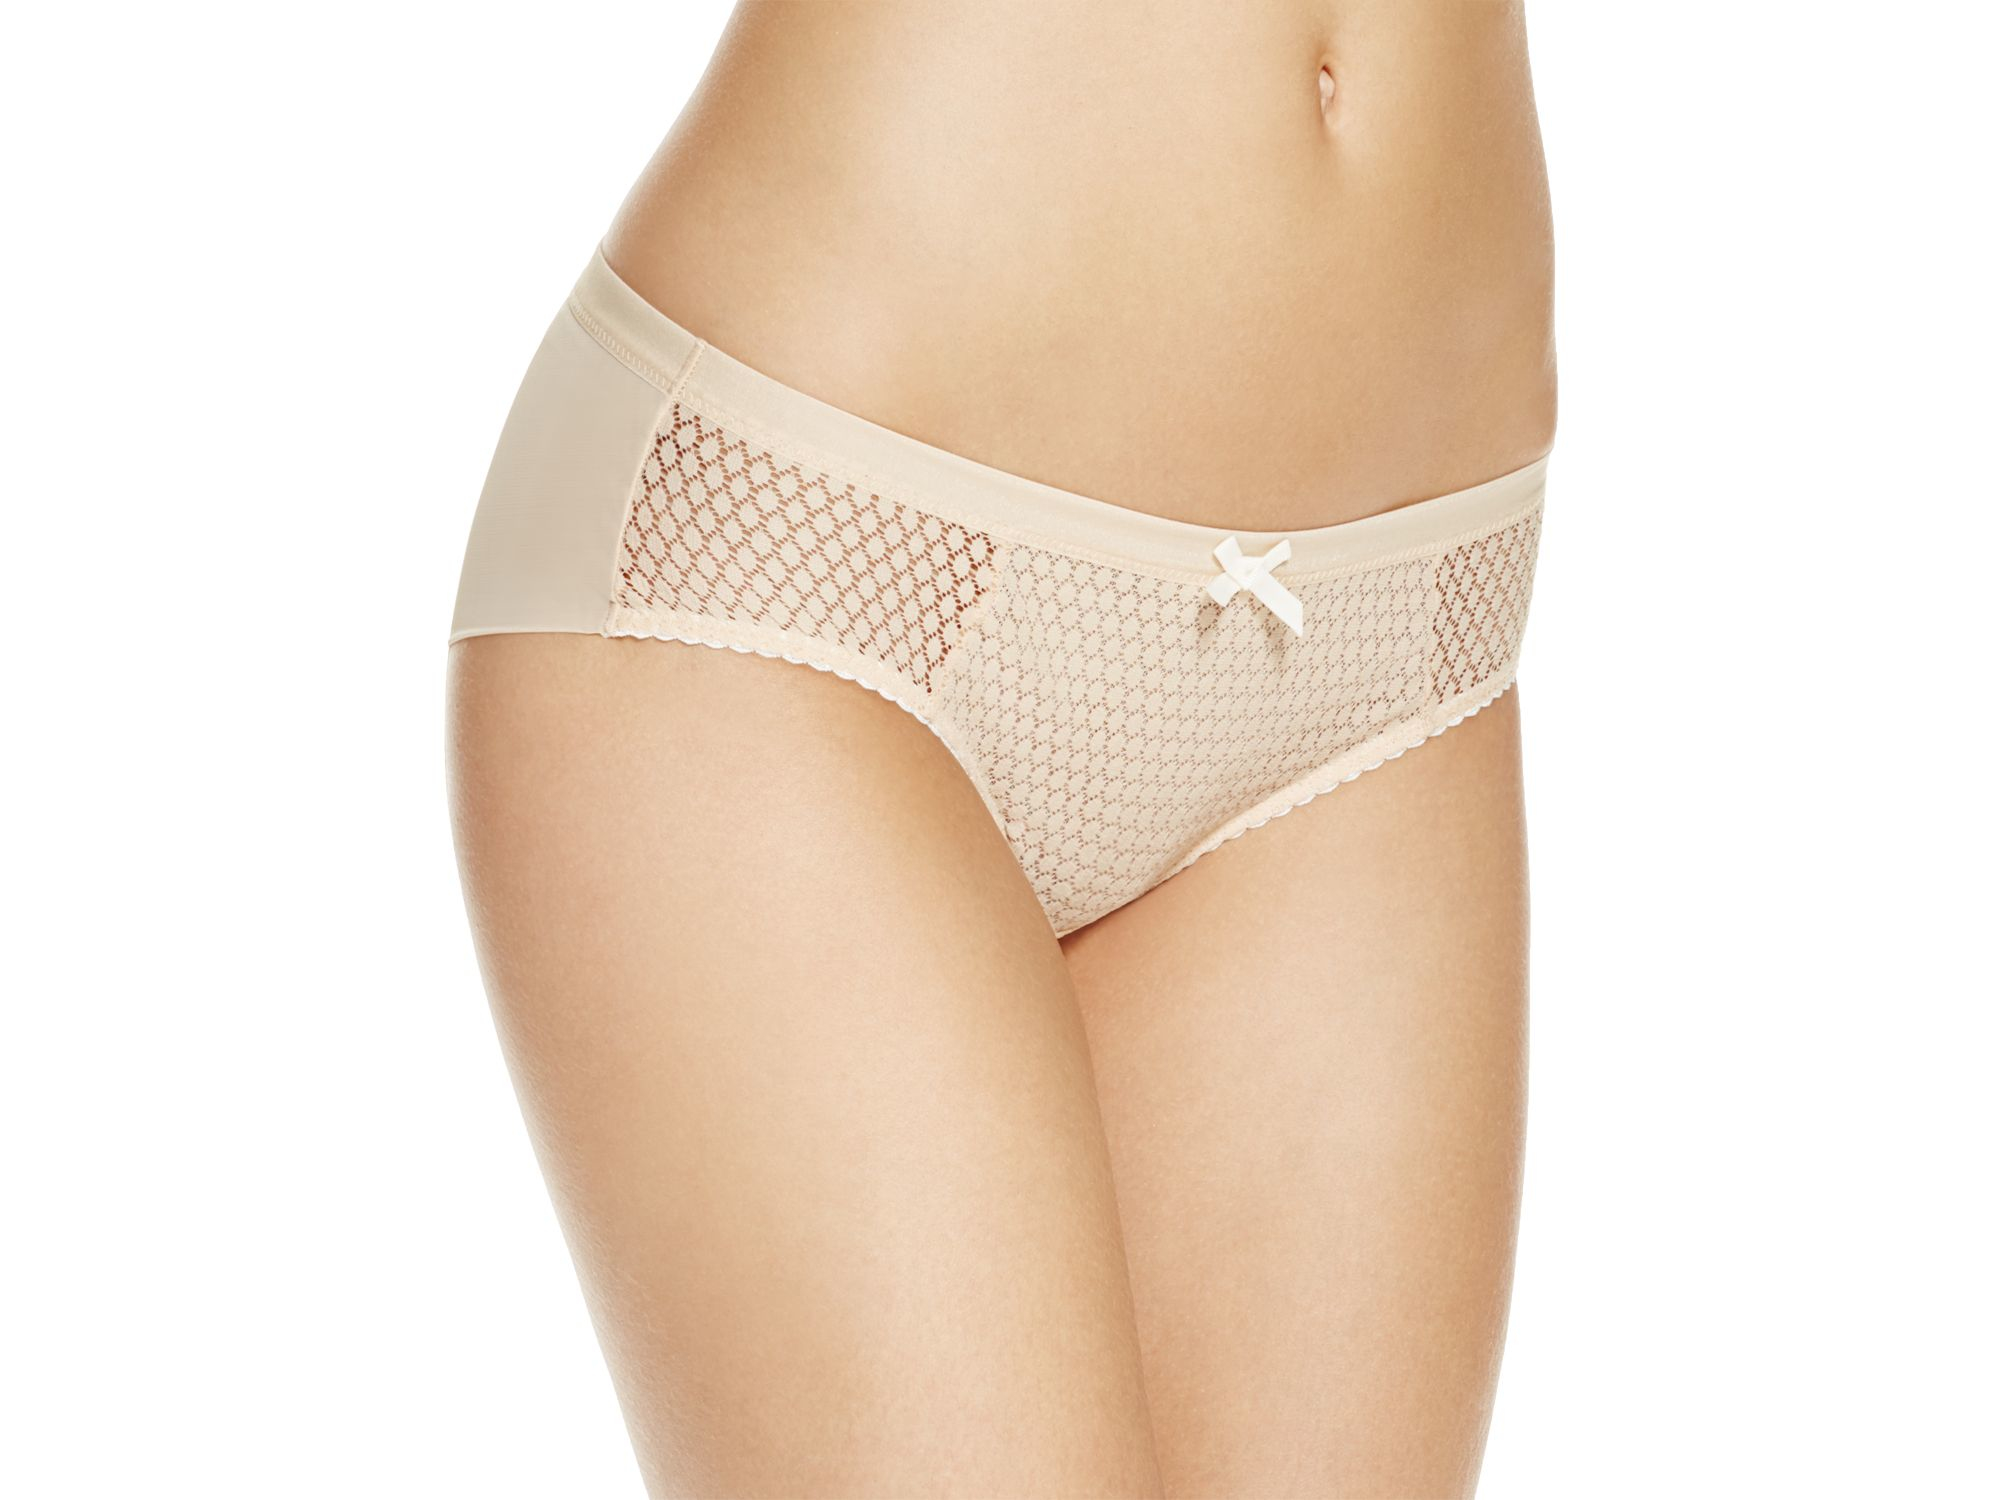 8907585569e25 Lyst - Heidi Klum Hipster - Leise Culotte  h34-1067 in Natural